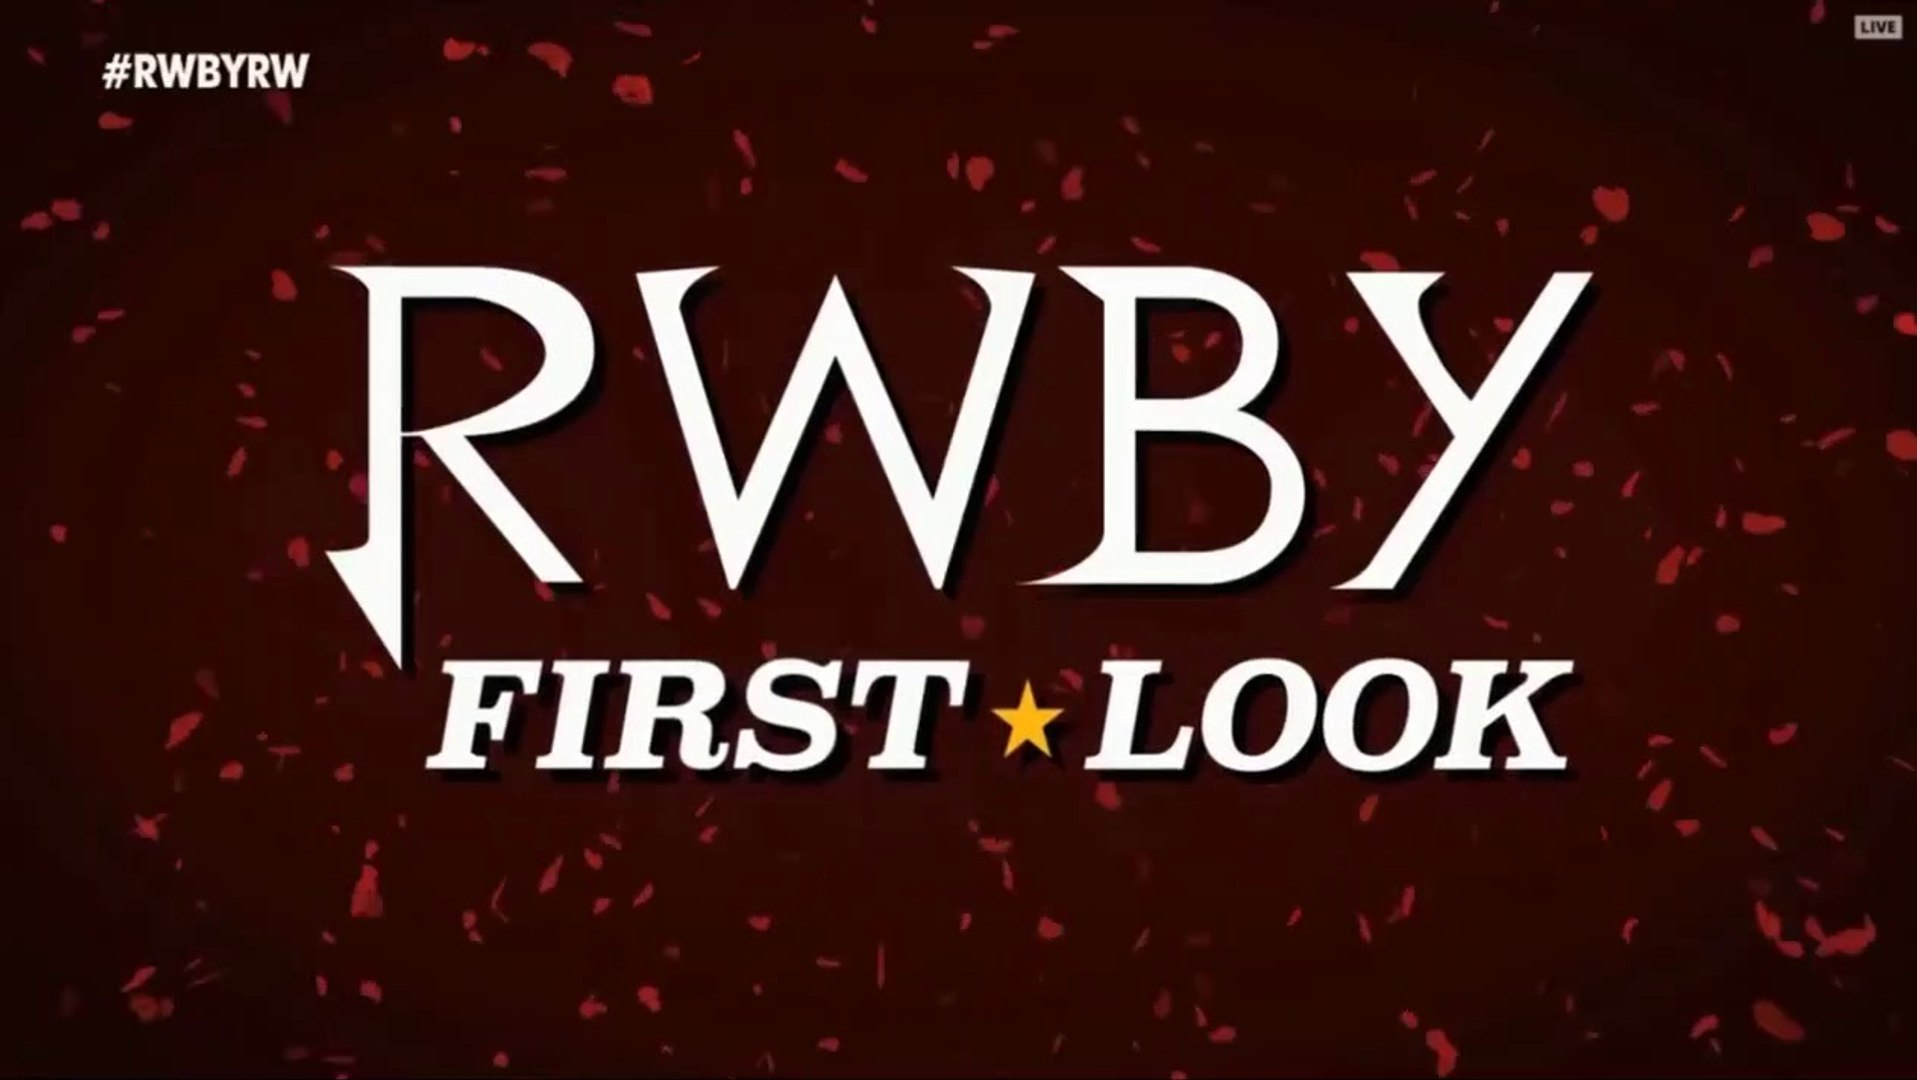 RWBY Volume 5 Chapter 10 Sneak Peek 10 16 December 2017